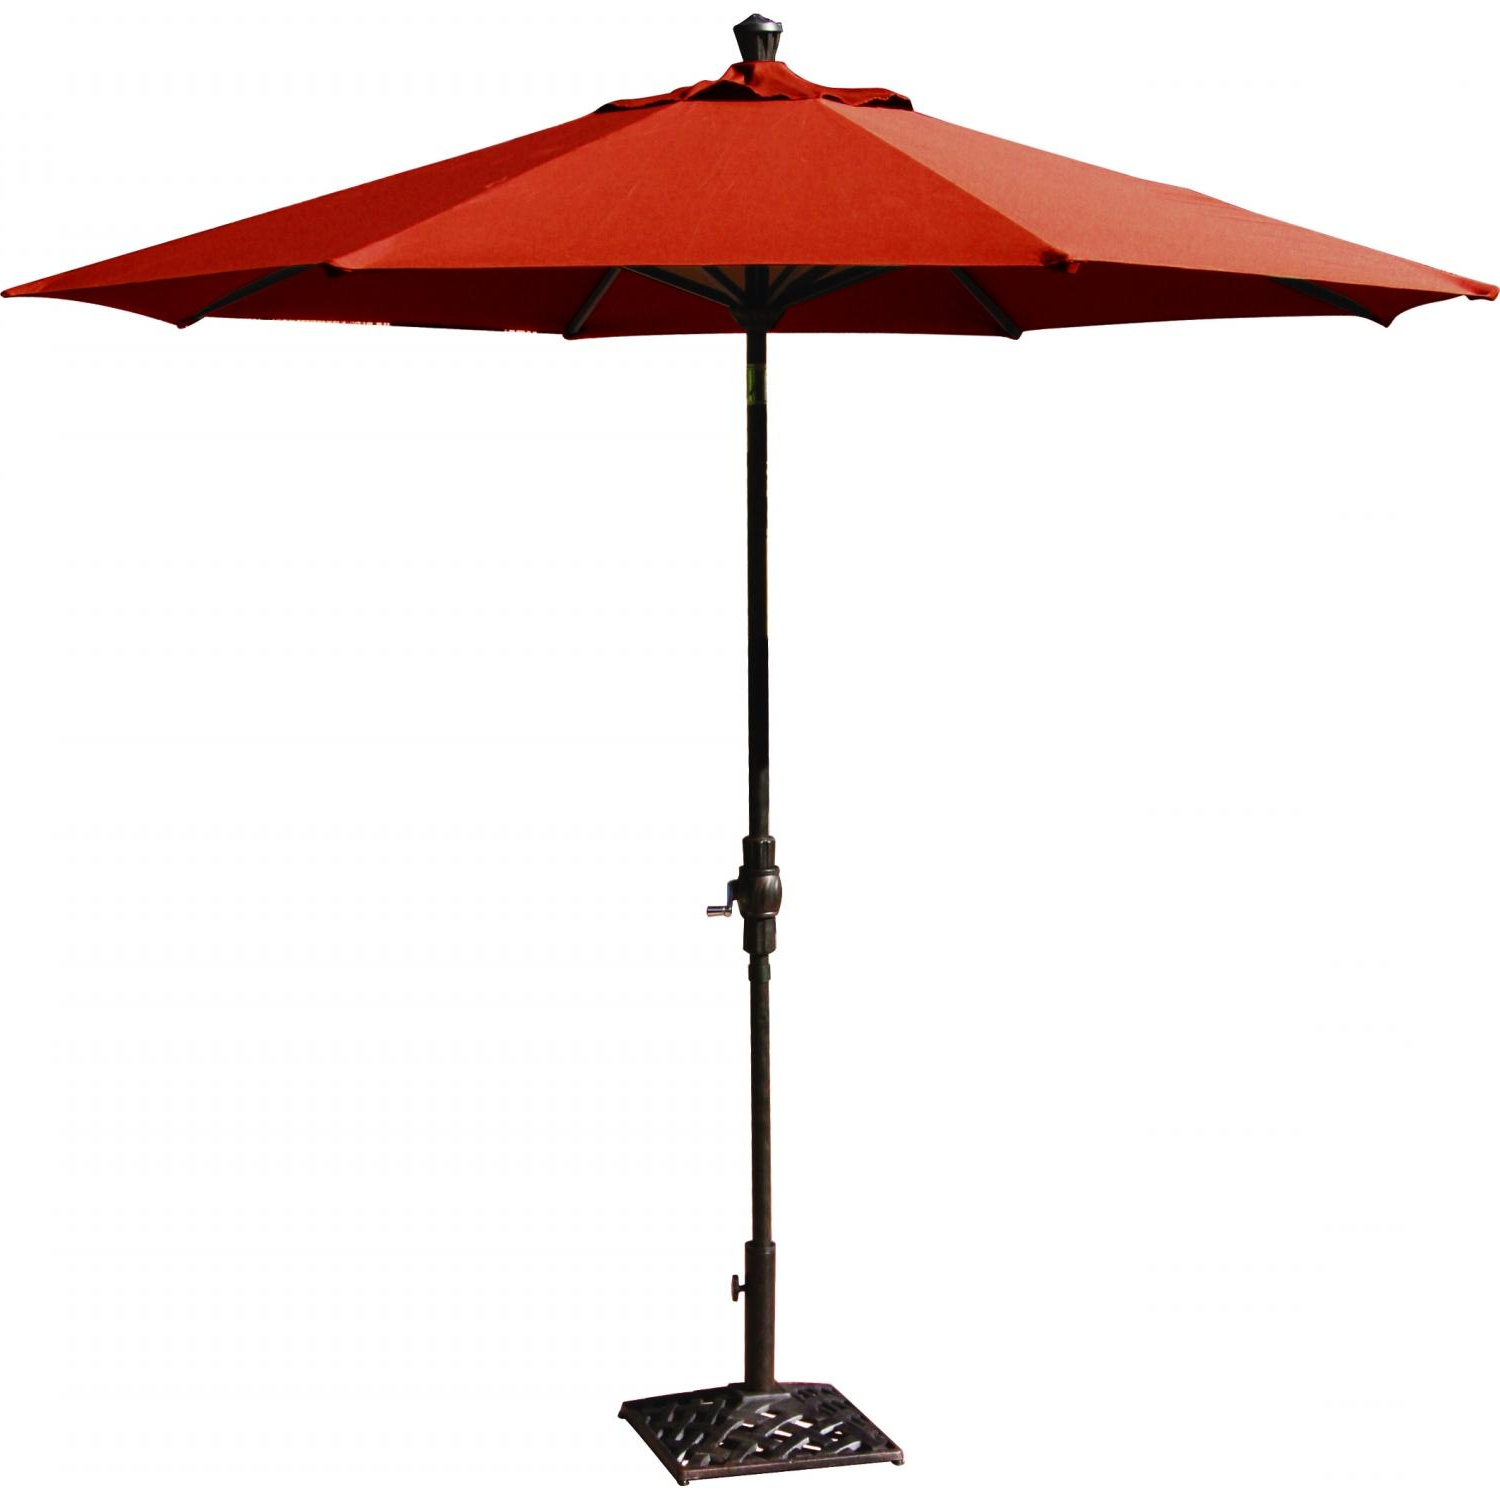 Solid Market Umbrellas Throughout Widely Used Market Umbrella Aluminum Frame 9' Autotilt Sunbrella Standard Solid (More  Colors) (View 17 of 20)